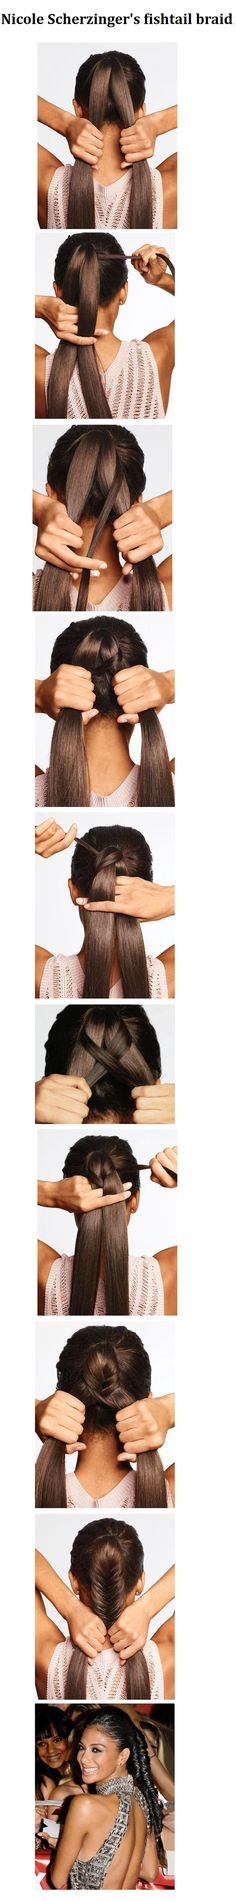 #Hair Dresser #Hair Style #Hairdo #Hair Dressing #Beauty Hair    Nicole Scherzinger's fishtail braid